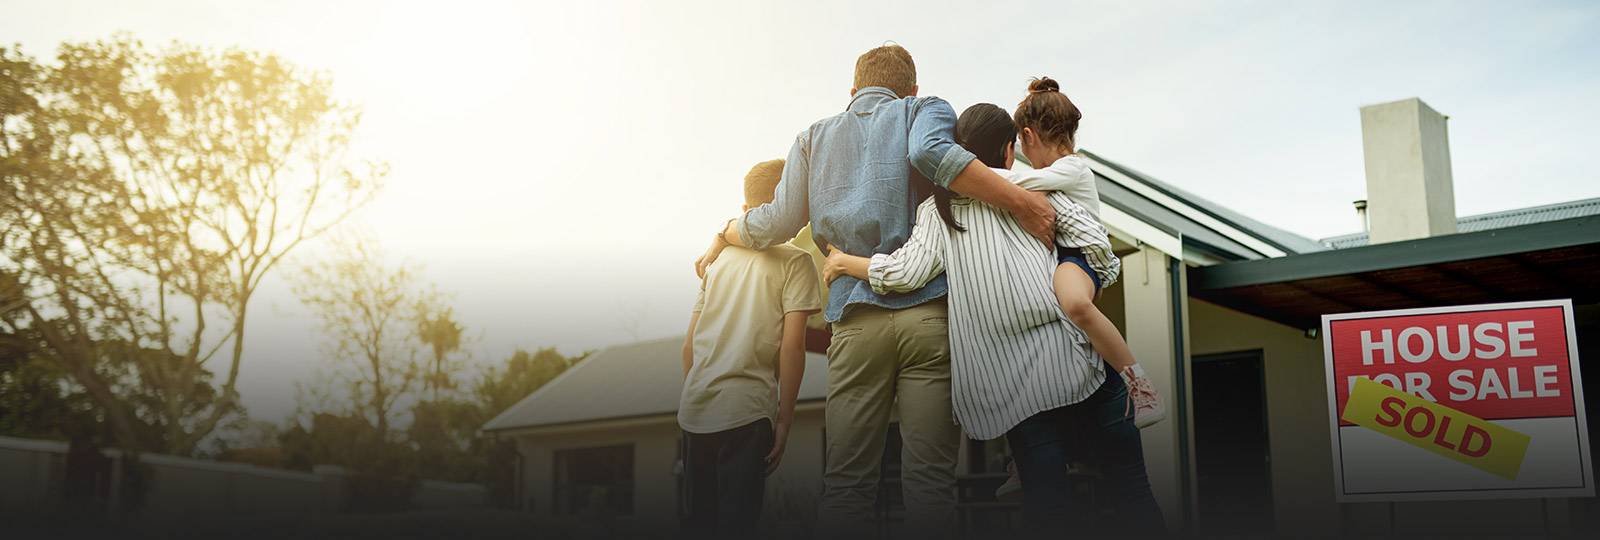 family with arms around each other looking at a sold house